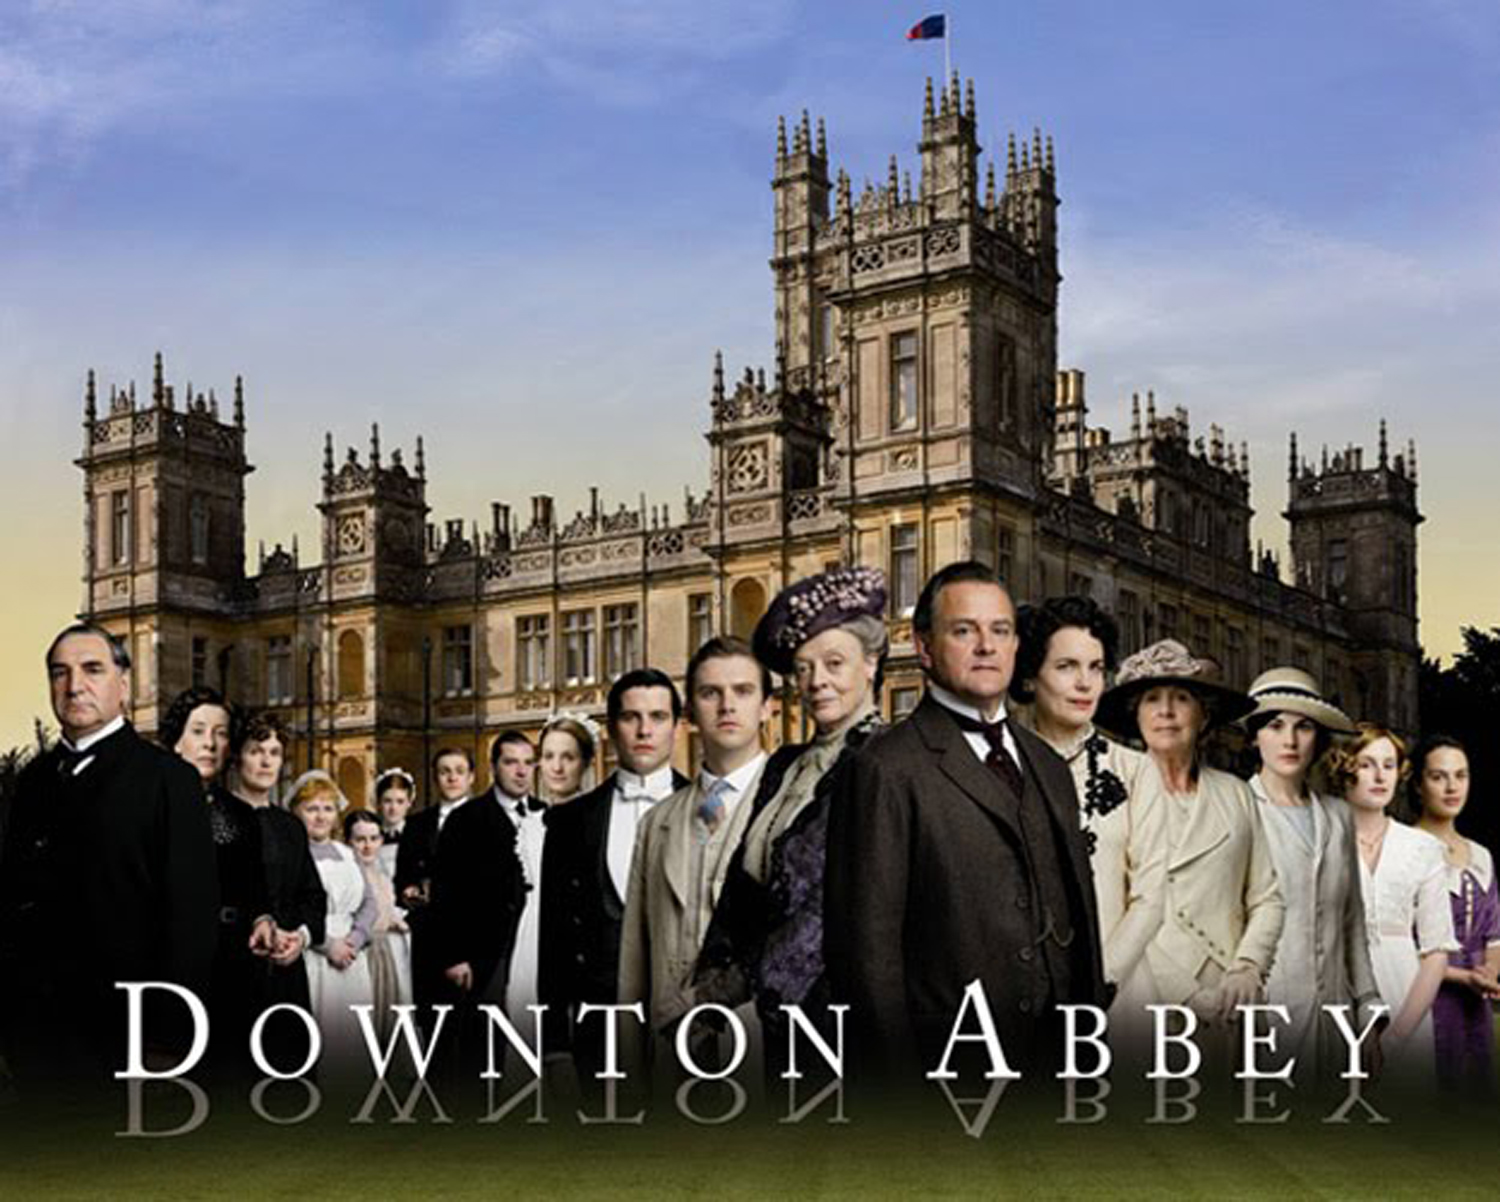 DowntonAbbey1.jpg